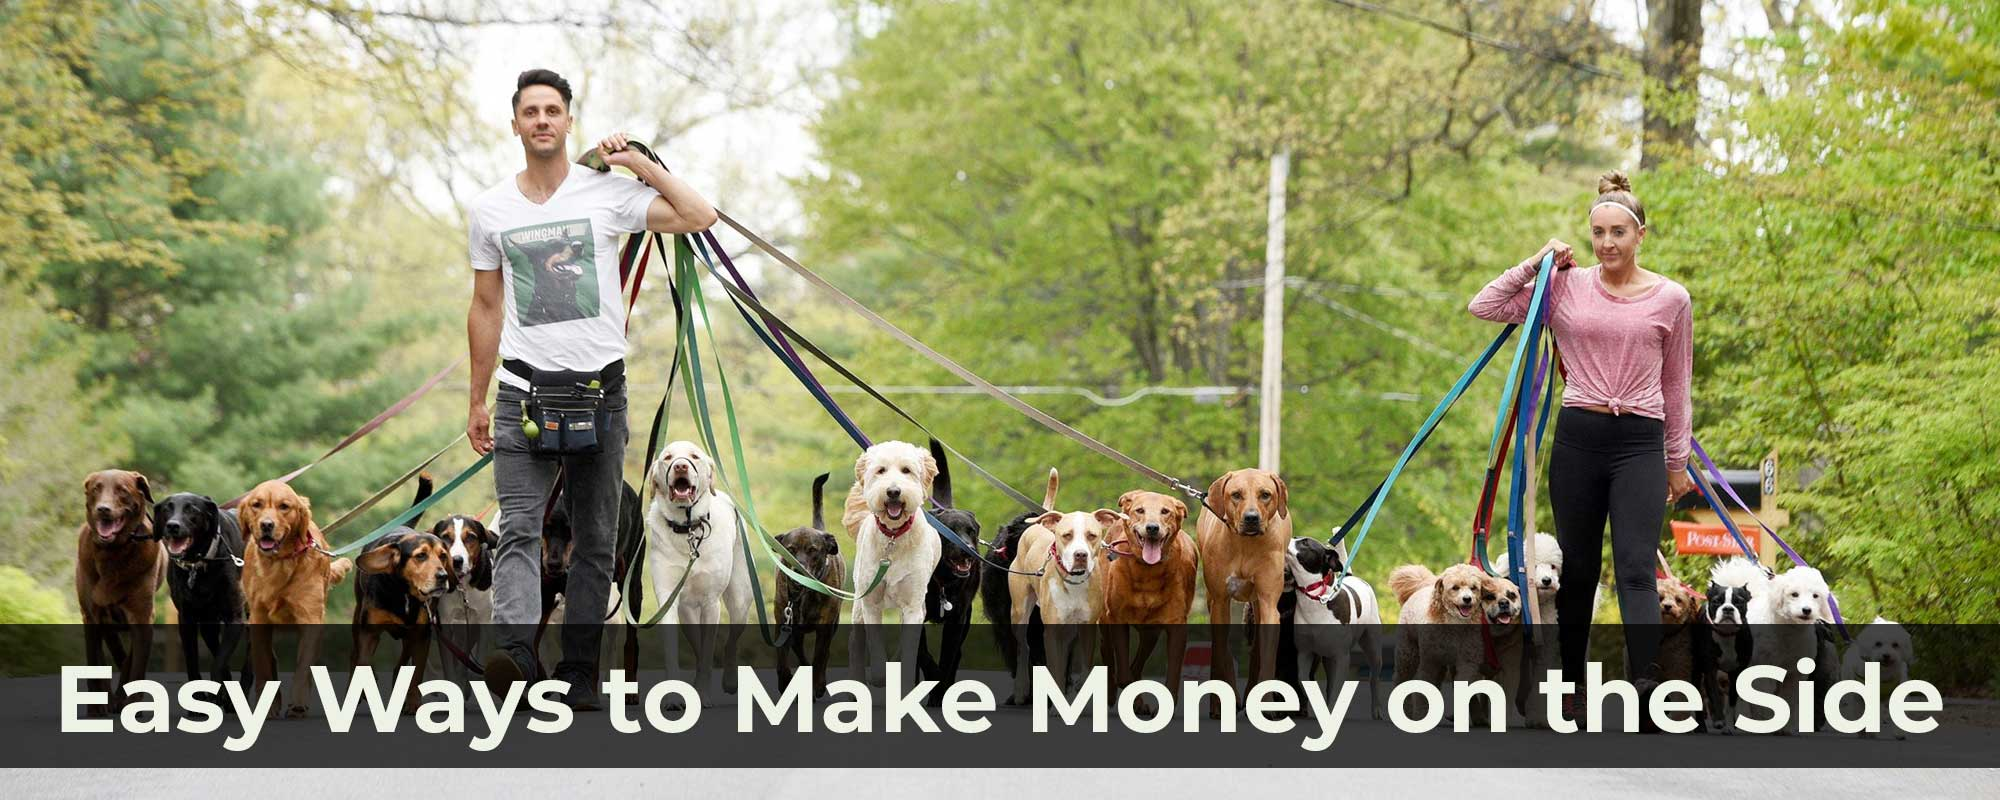 25 Easy Ways to Make Money on the Side